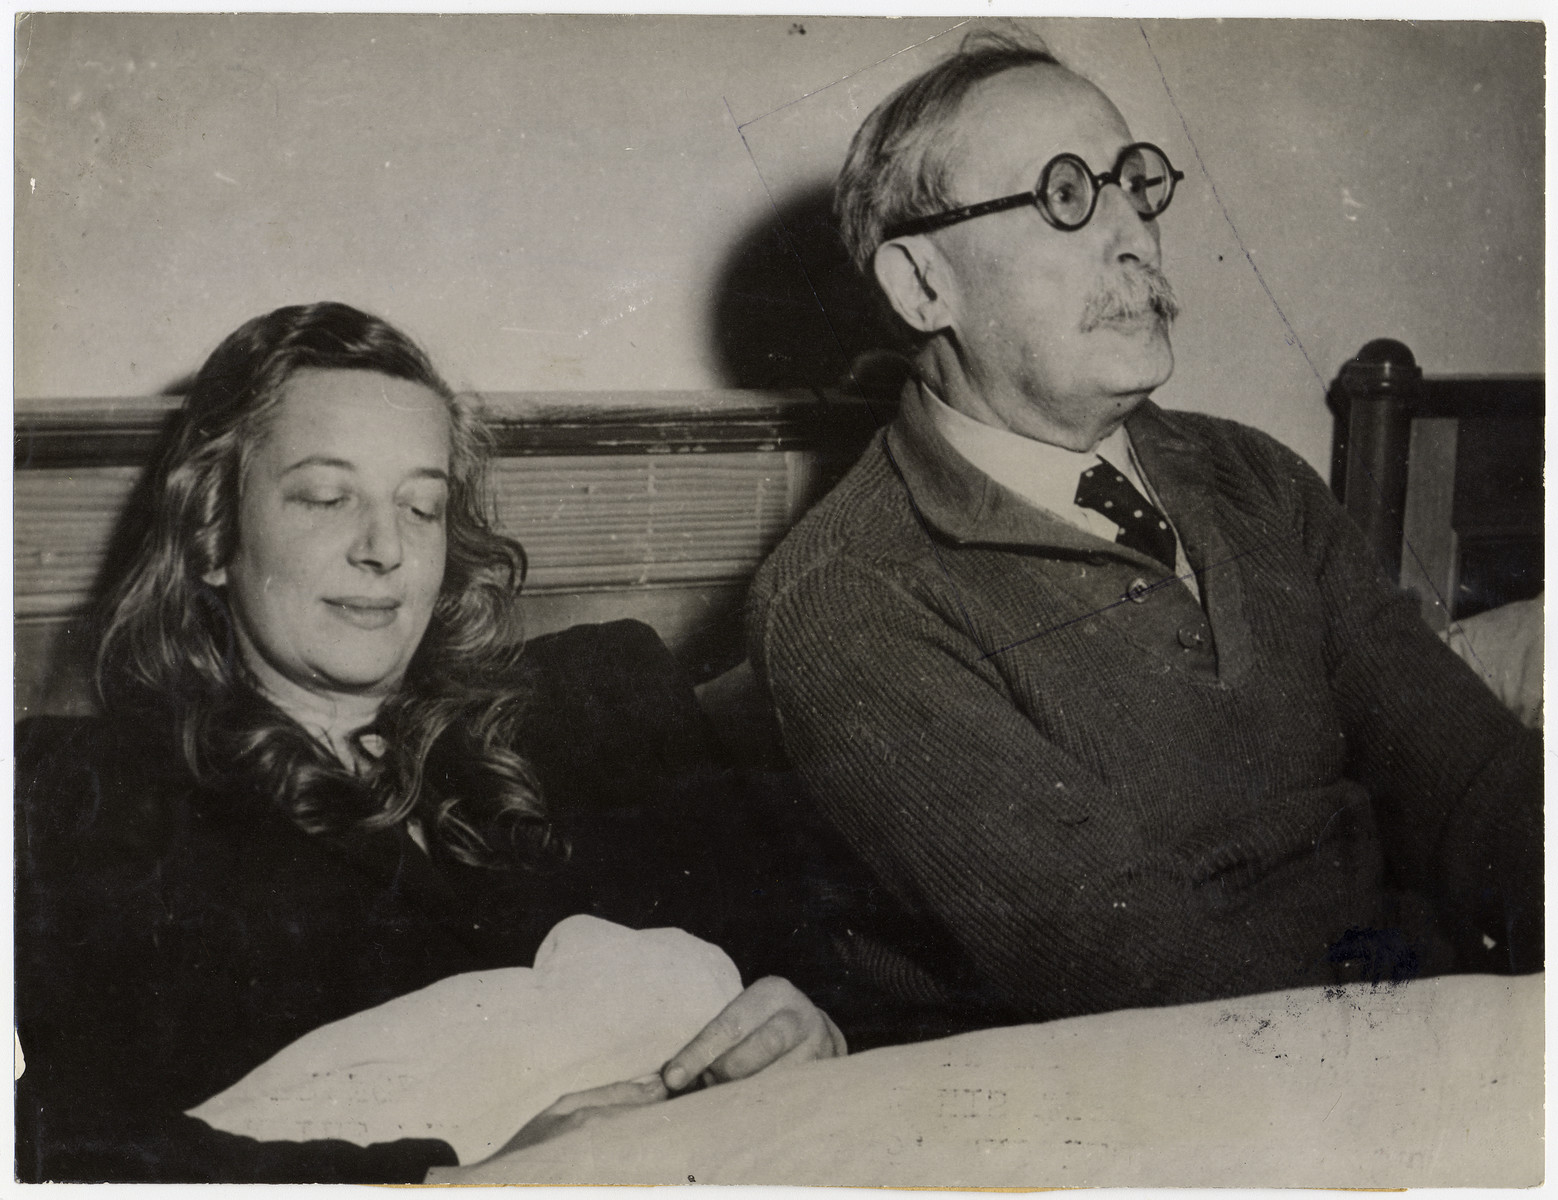 """Portrait of former French Prime Minister Leon Blum and his wife, following their liberation.  Original caption reads: """"Among the famous personalities freed by Allied troops from the German concentration camp at Lago di Braies in the Alps, in Italy, on May 4, 1945, was Leon Bloom, former Prime Minister of France, who is shown with his wife at the camp. Blum disclosed that he had been a prisoner in France until March, 1943, when the Gestapo took him to Germany with Deladier and General Gamelin. Confined at Buchenwald, he was guarded by 20 SS men with especially trained police dogs. Later he was taken to the Alpine camp for perpetual confinement, without having a trial. Although suffering from lumbago and bronchitits, Blum shook hands energetically with his Liberators. During five years of imprisonment, Blum and his wife listened secretely to BBO broadcasts."""""""